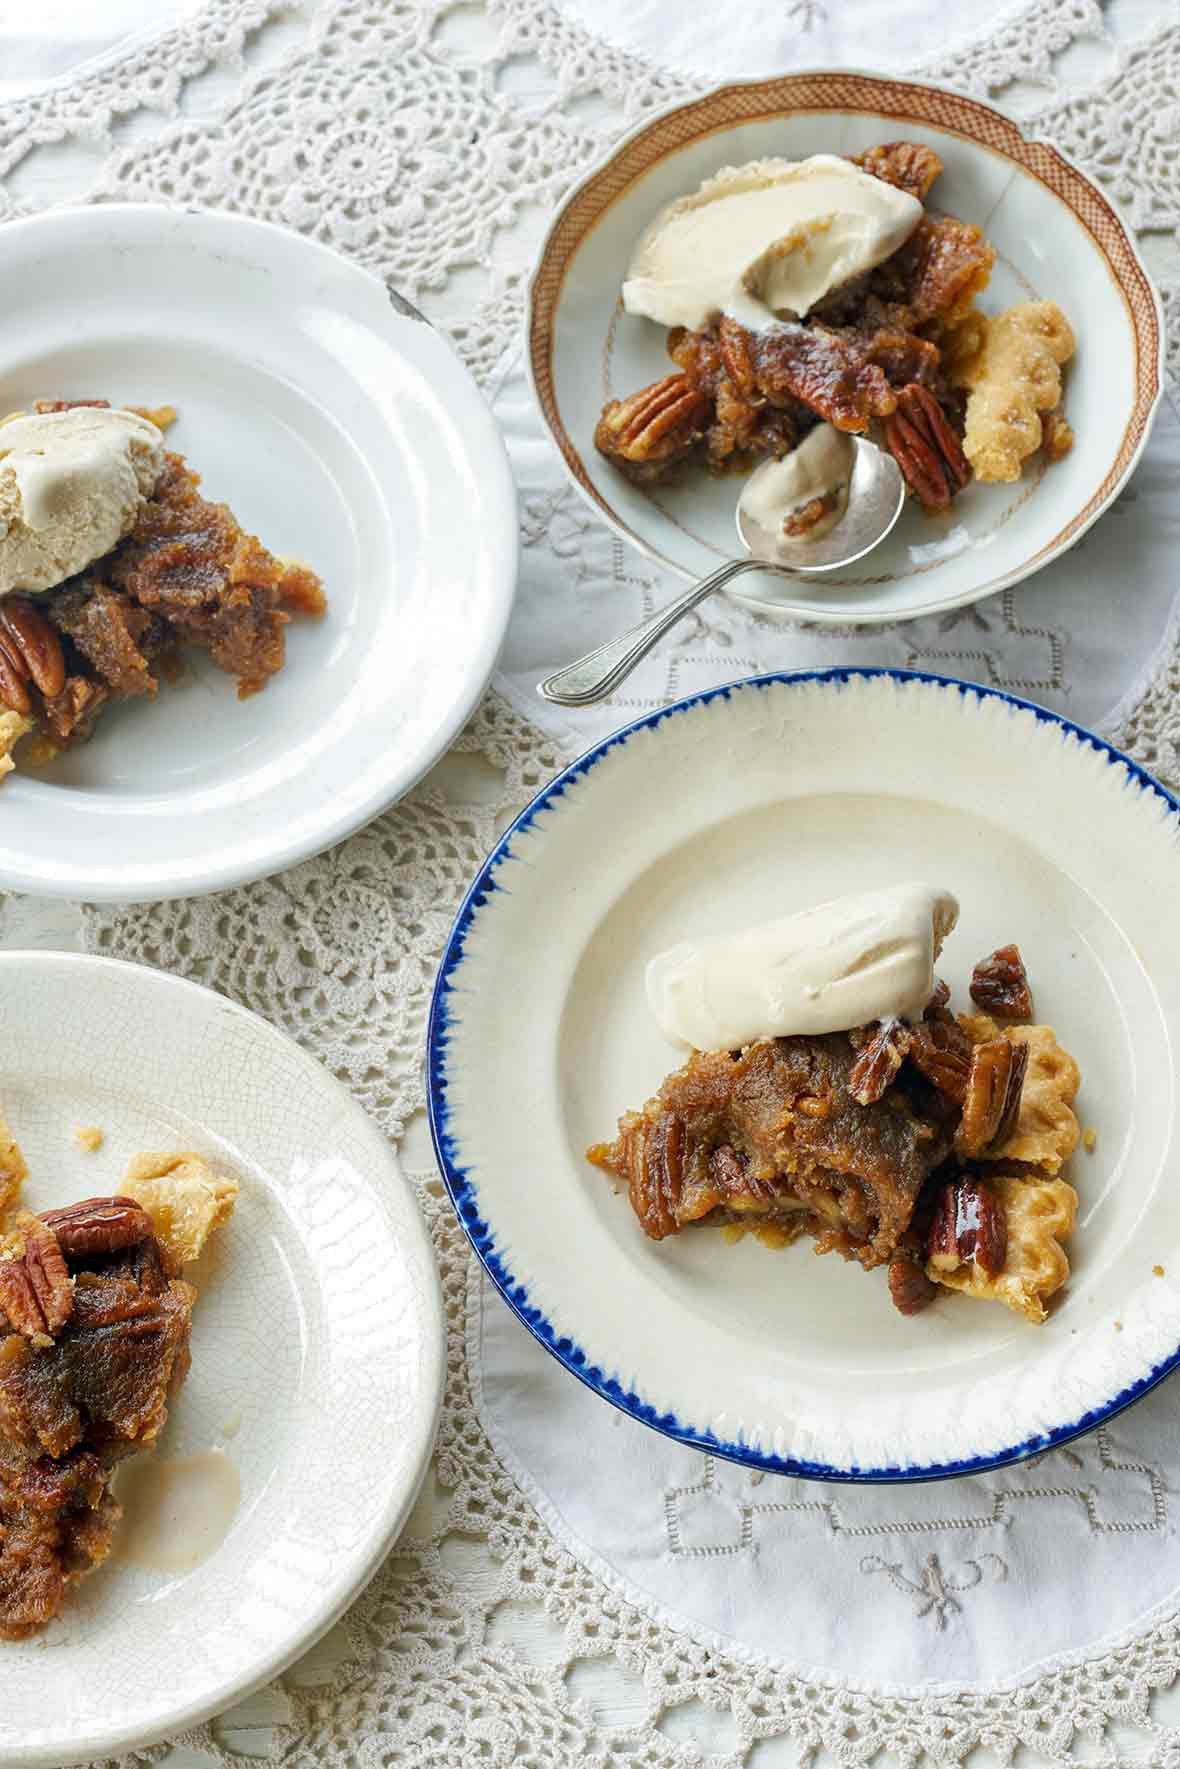 Four plates of rum pecan pie in a flaky crust, topped with whole pecans and vanilla ice cream